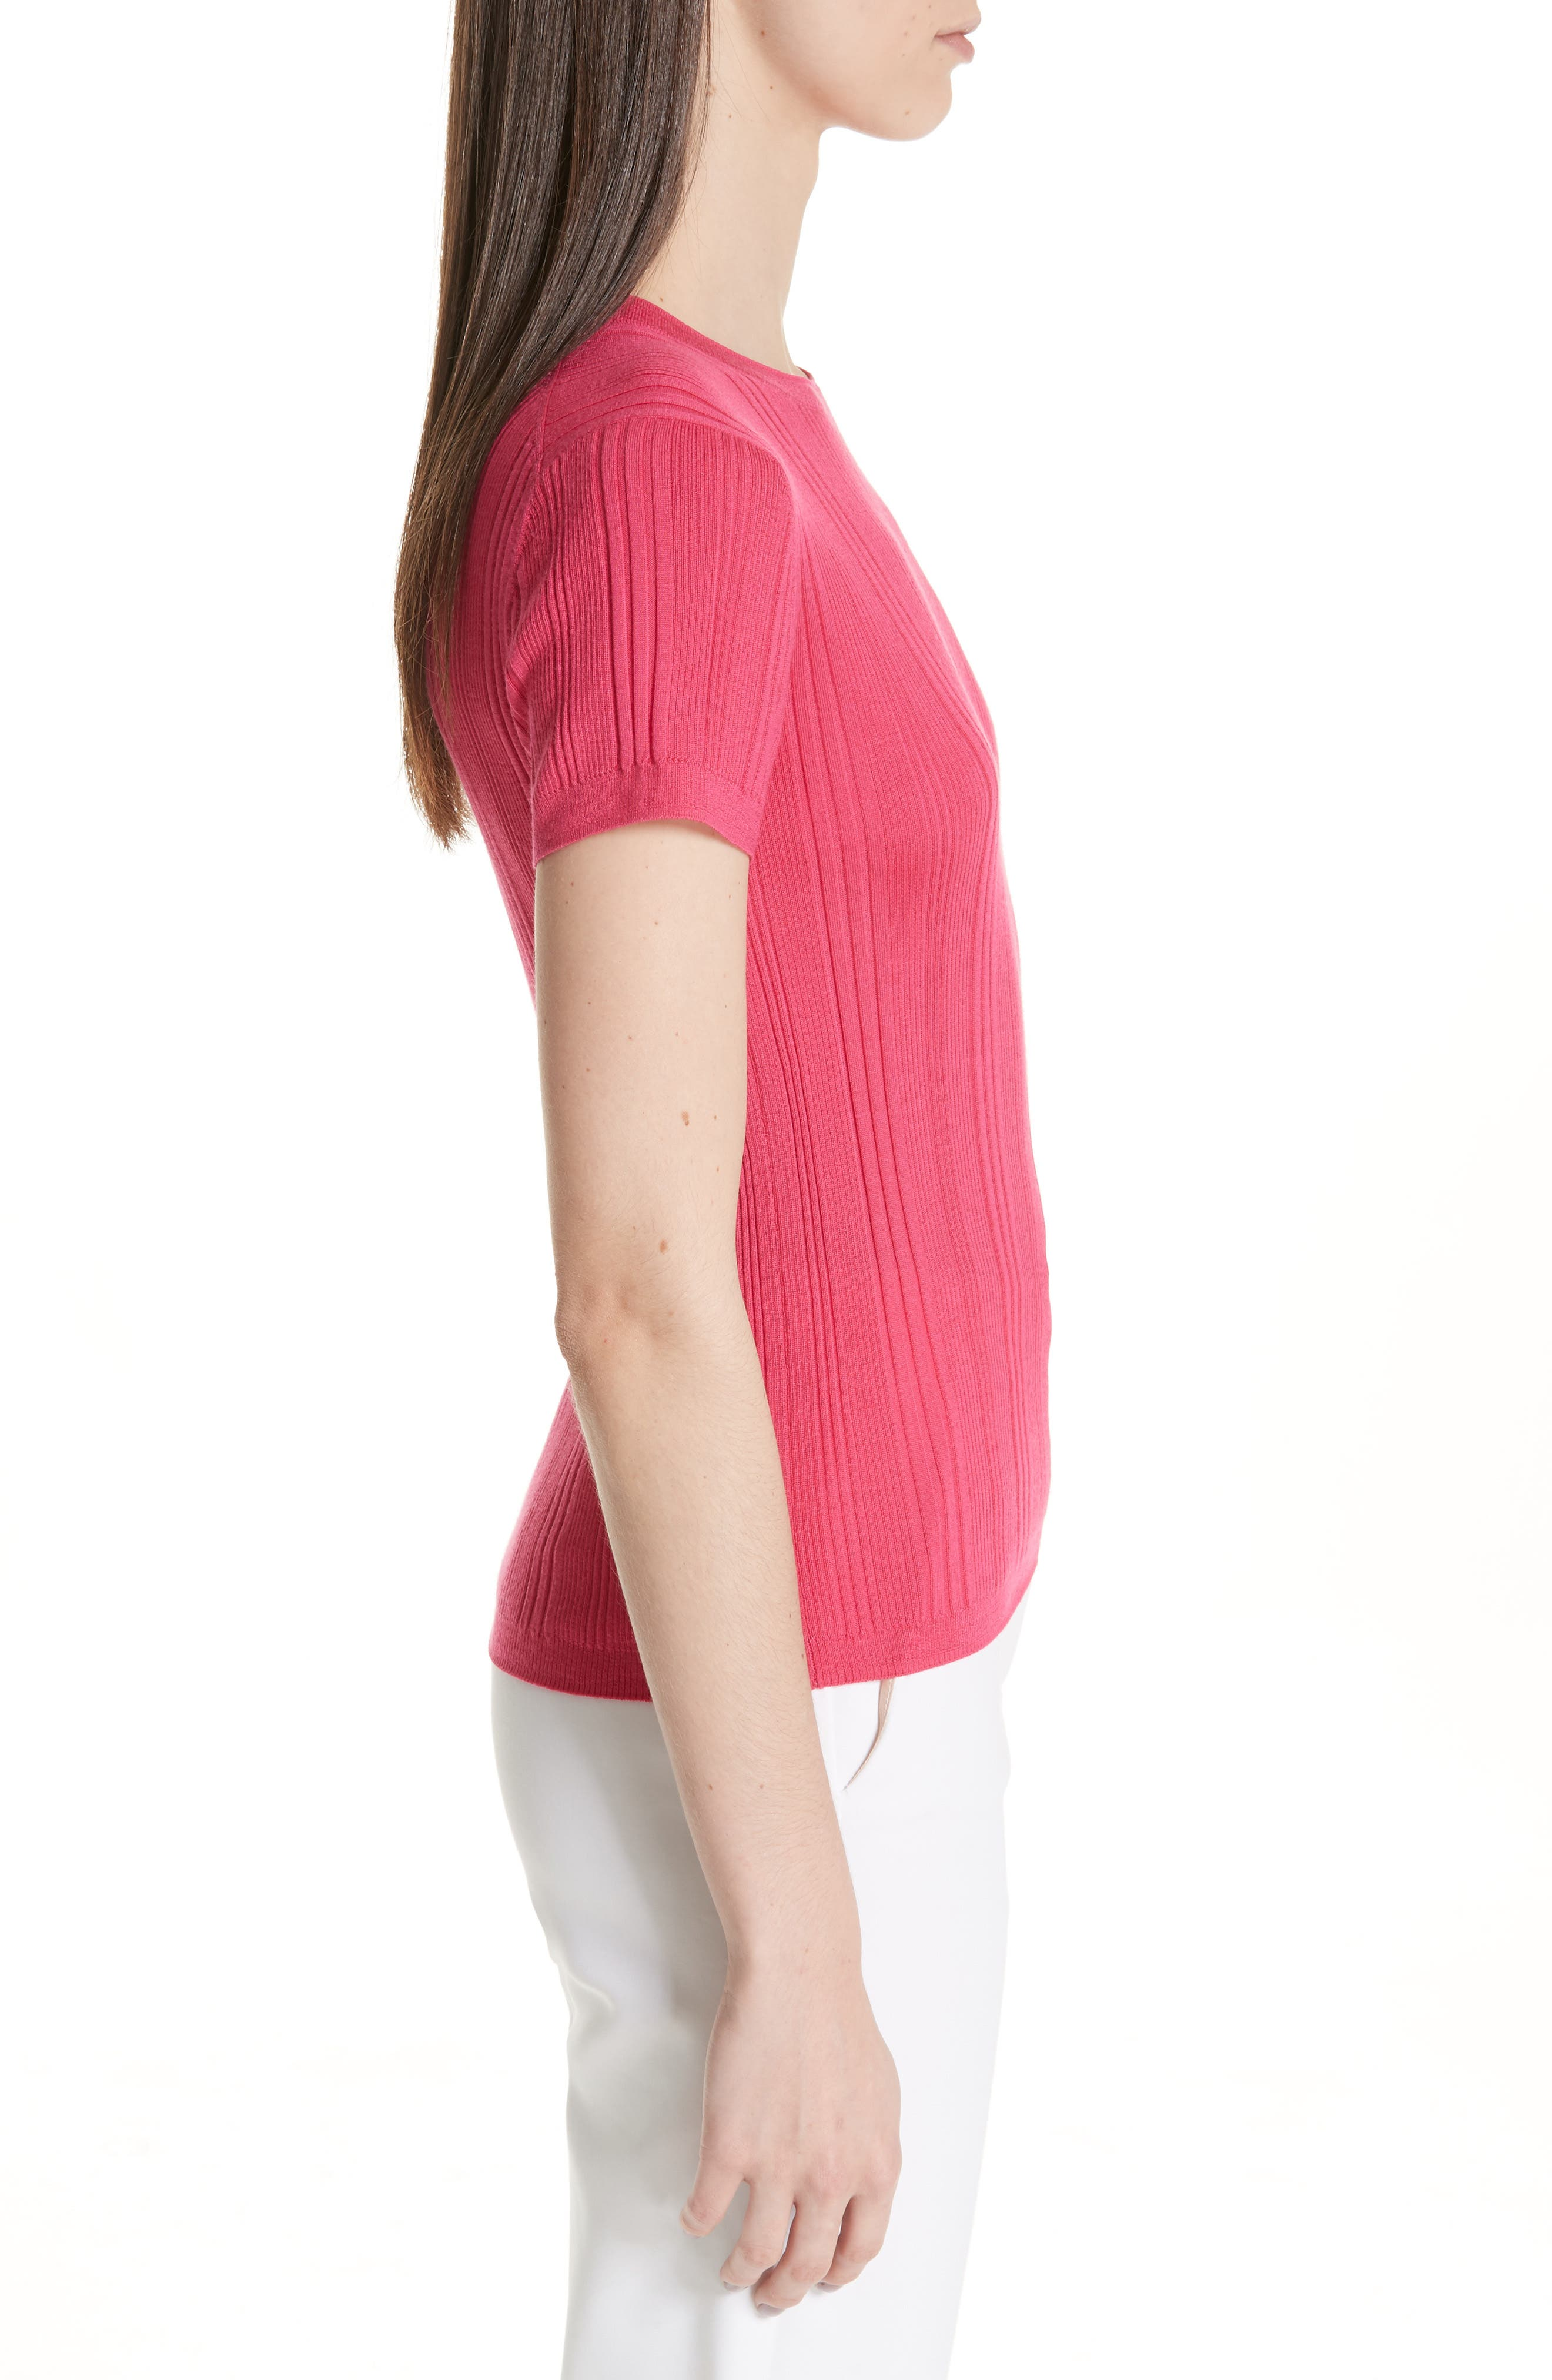 ST. JOHN COLLECTION, Superfine Variegated Rib Sweater, Alternate thumbnail 3, color, FLAMINGO